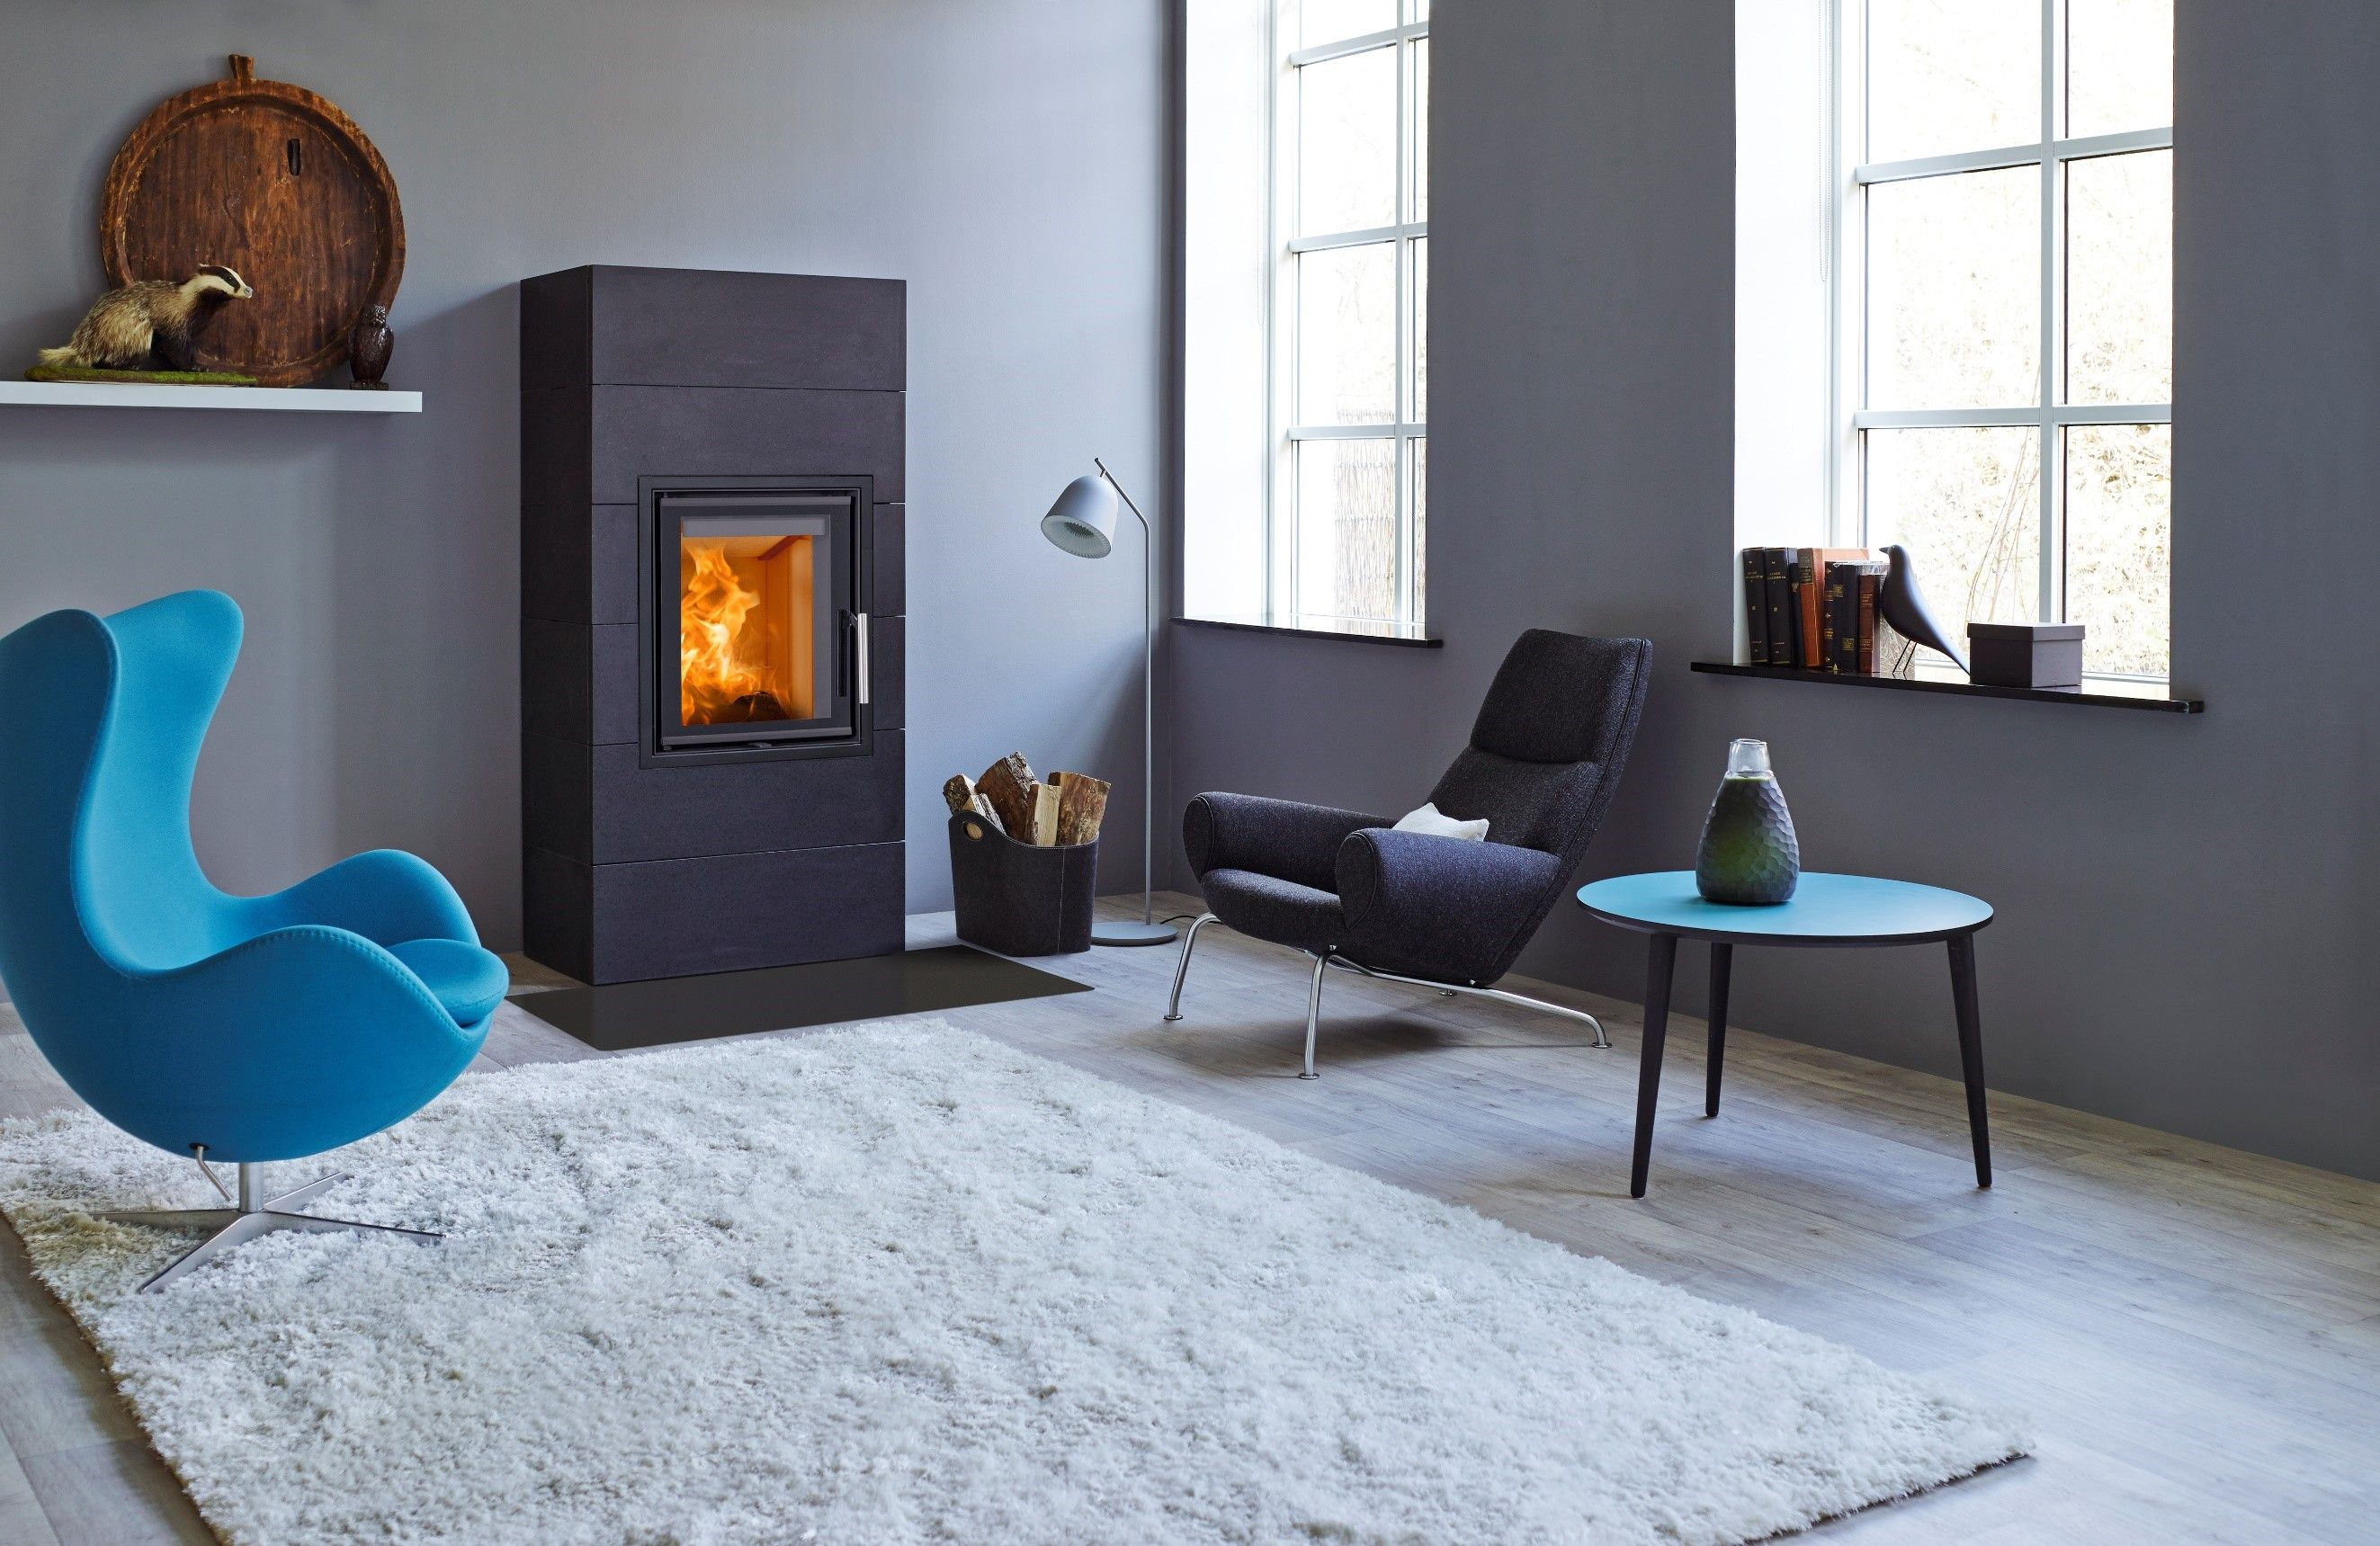 Erhardt Cheminees Scan 5001 Is A Compact Vertical Stove Which Can Be Installed Into